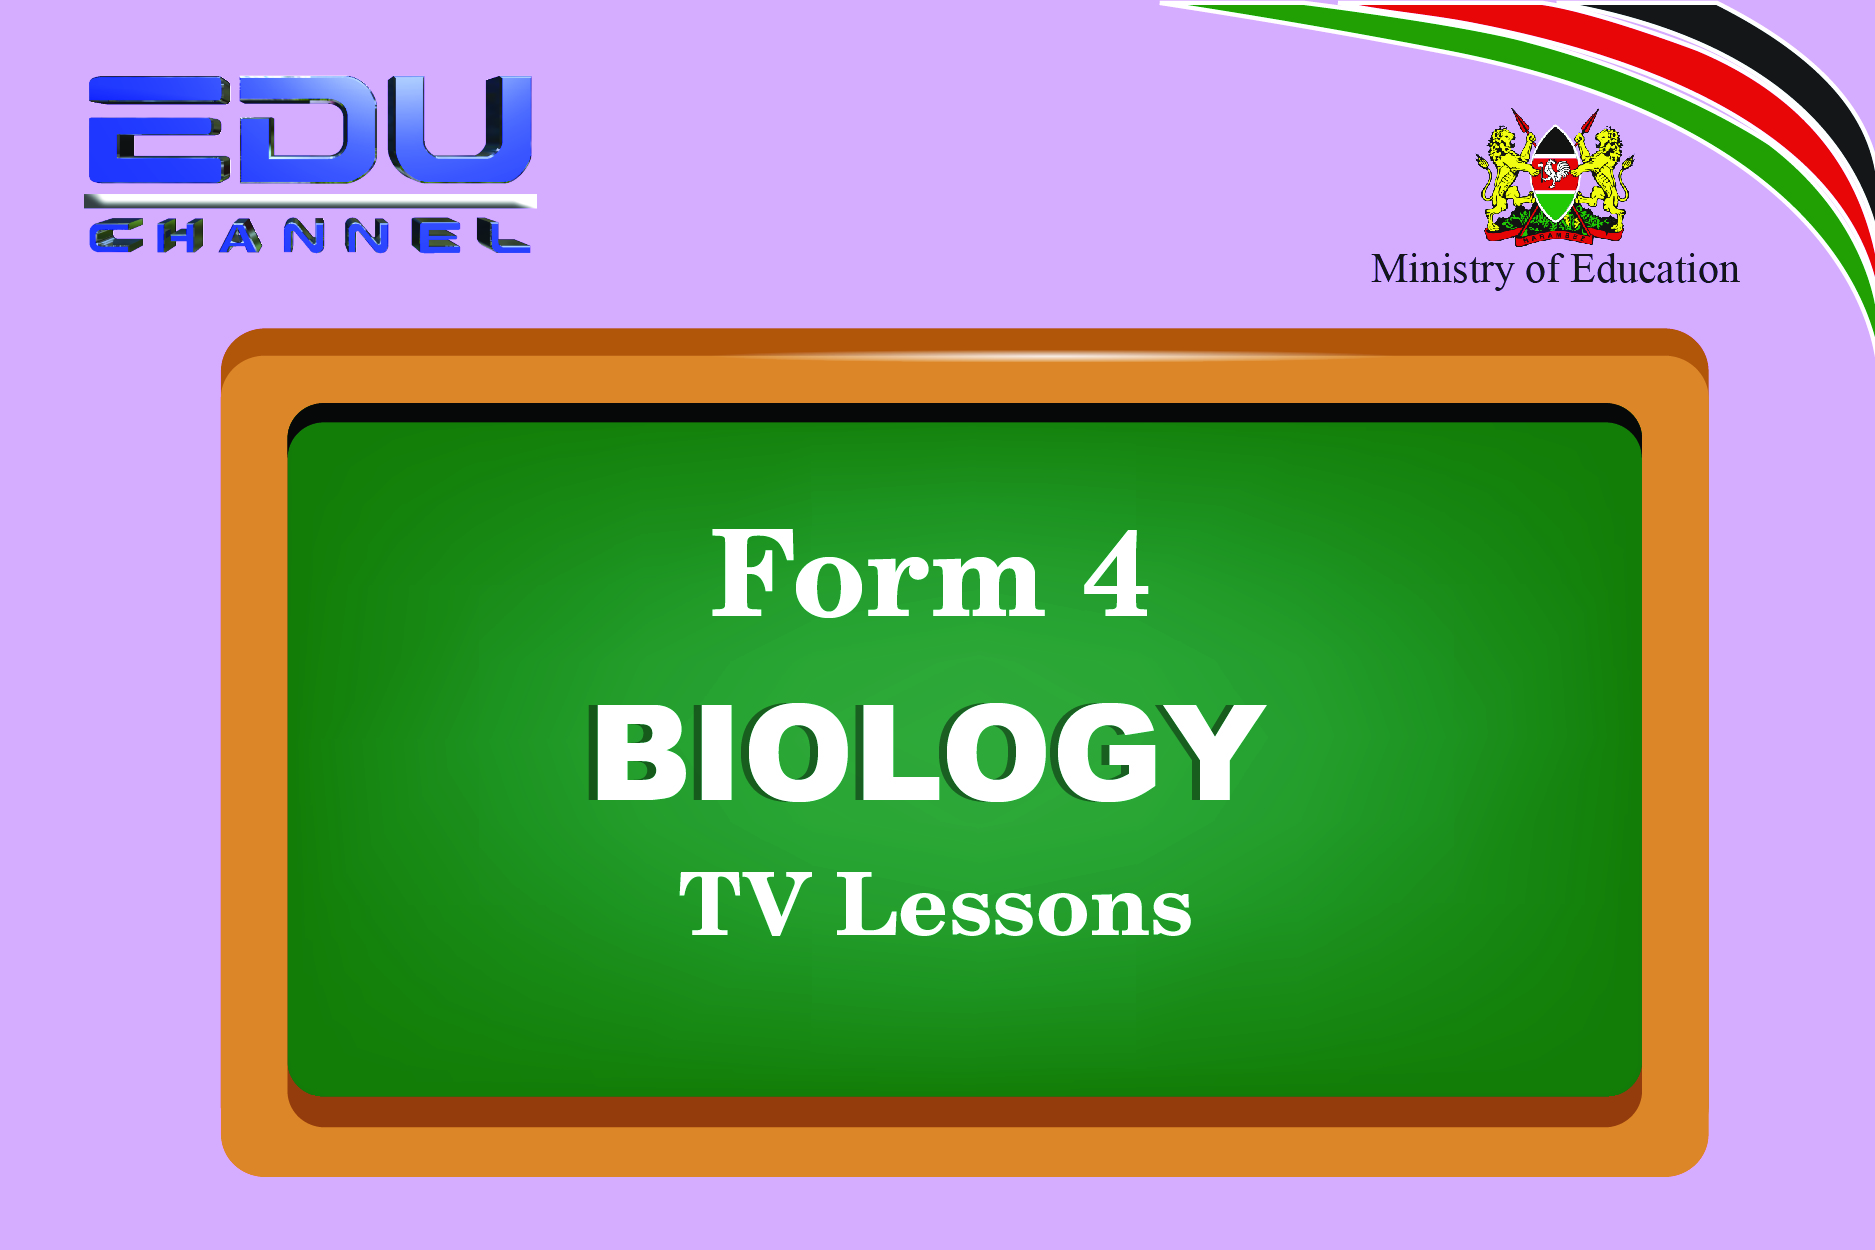 Form 4 Biology Lesson 11: Reception response and Coordination of Organisms - Common eye defects